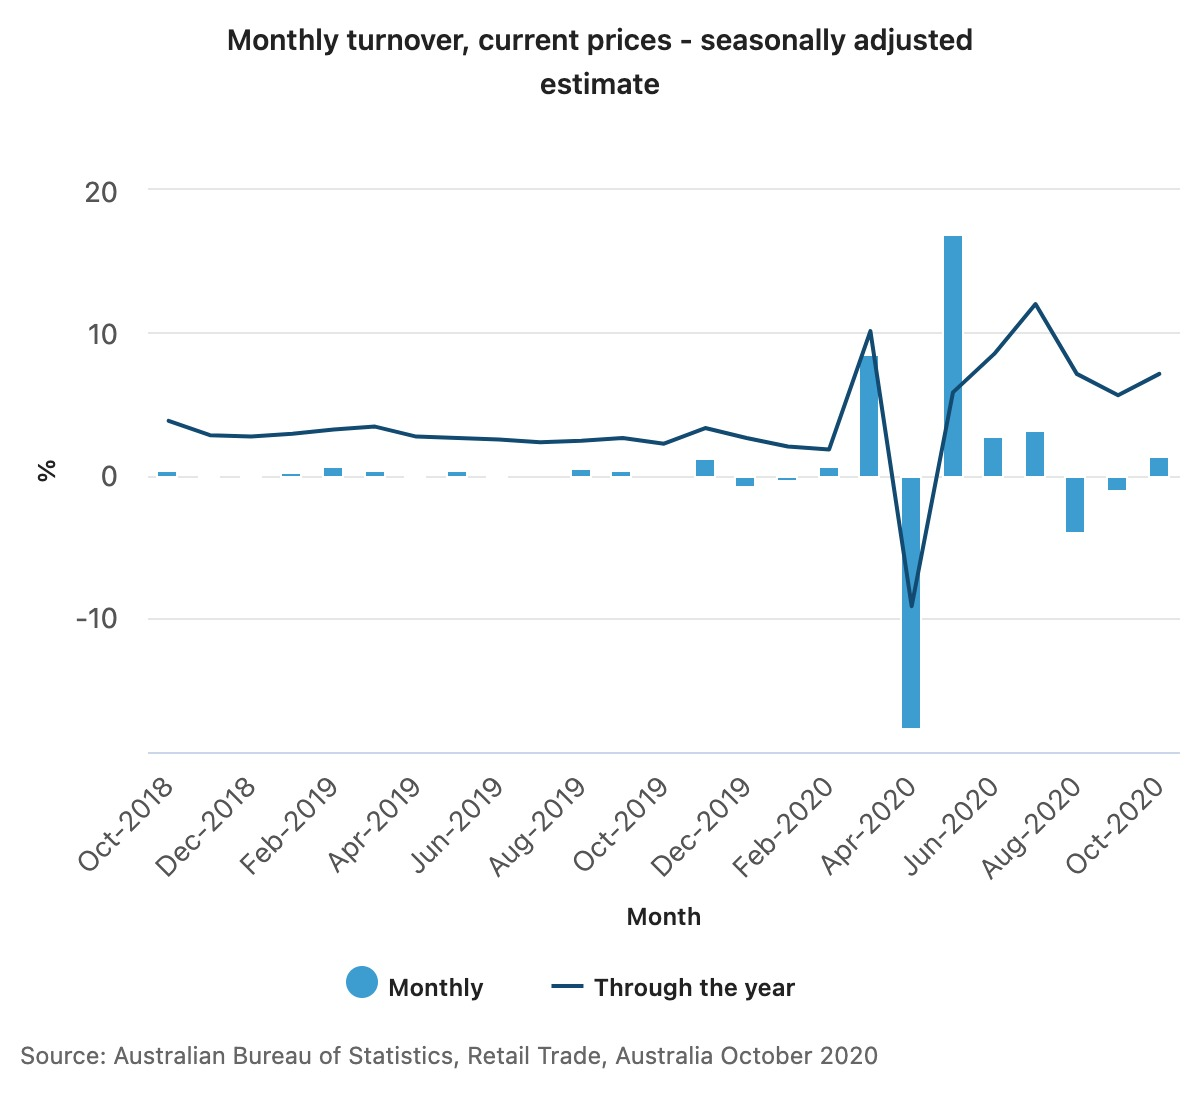 Consumer Goods Monthly turnover, current prices - seasonally adjusted estimate